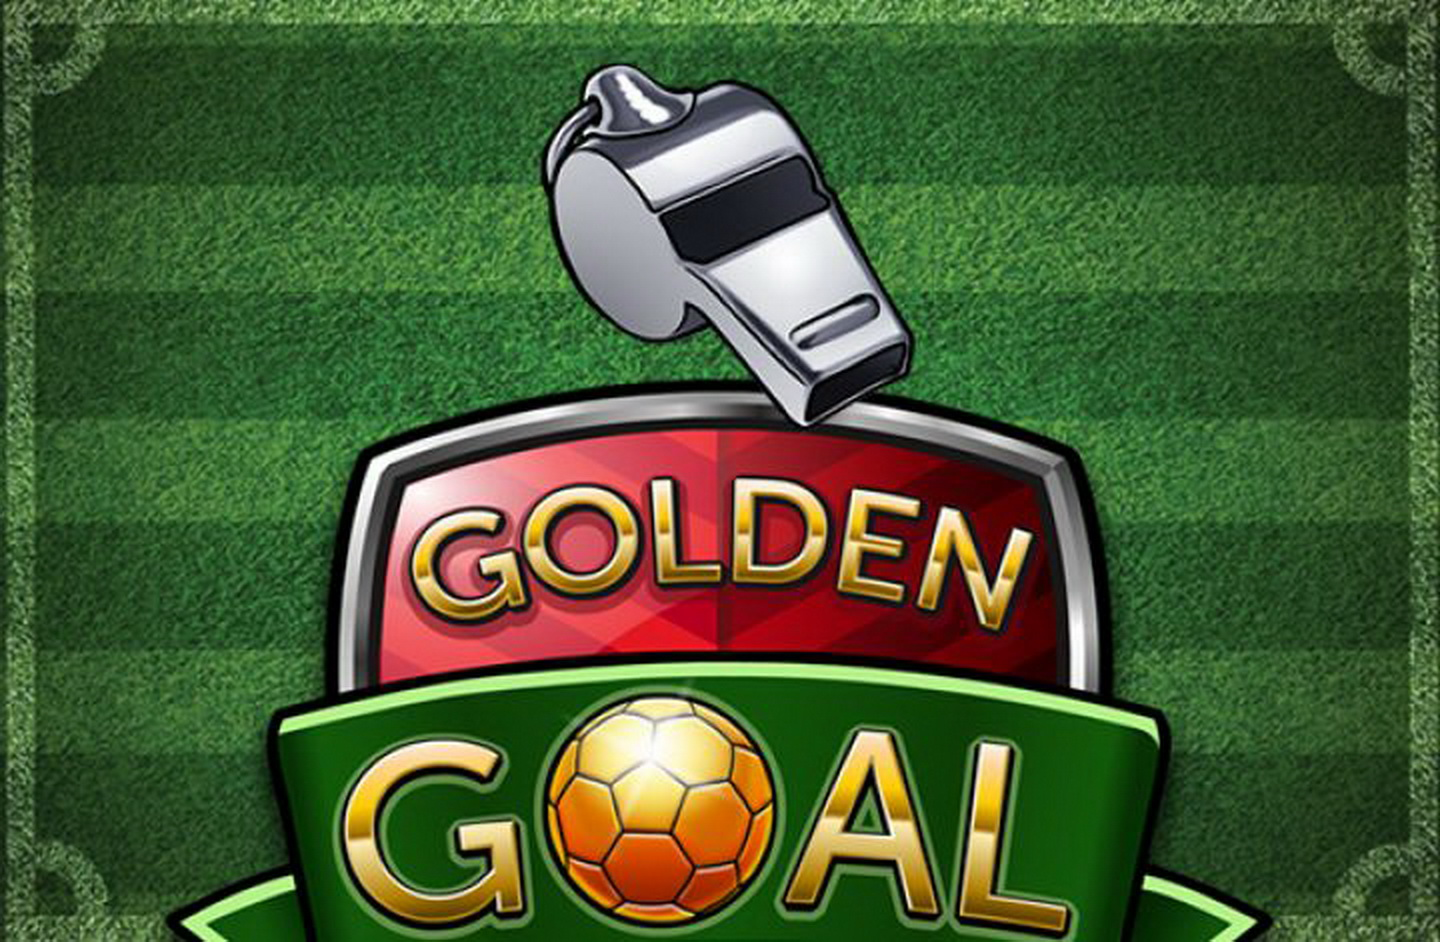 The Golden Goal Online Slot Demo Game by Play'n Go